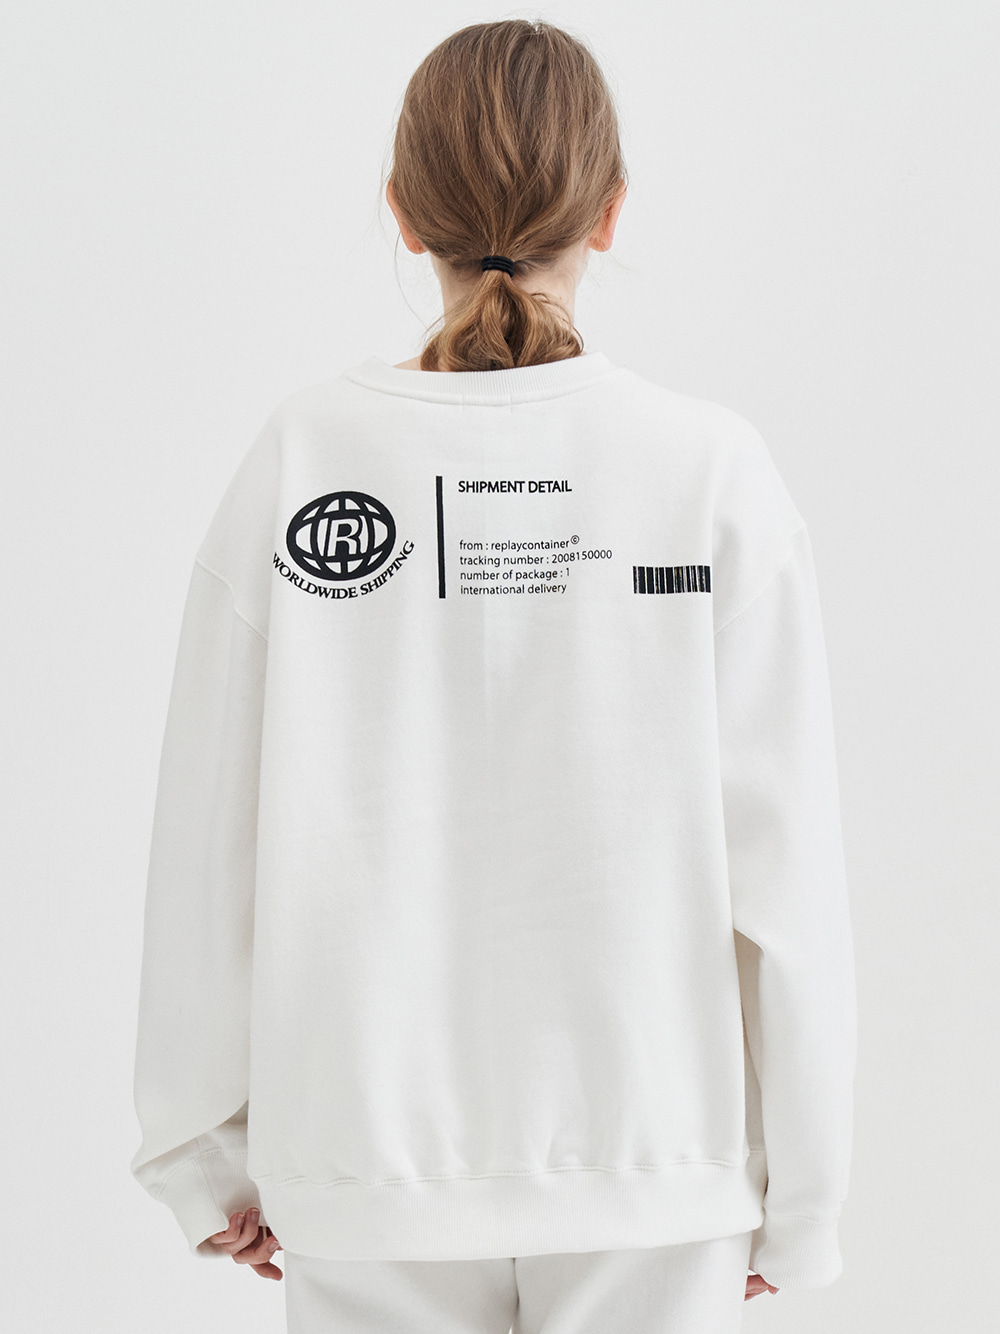 RC Worldwide mtm (off-white) [9/25 delivery]